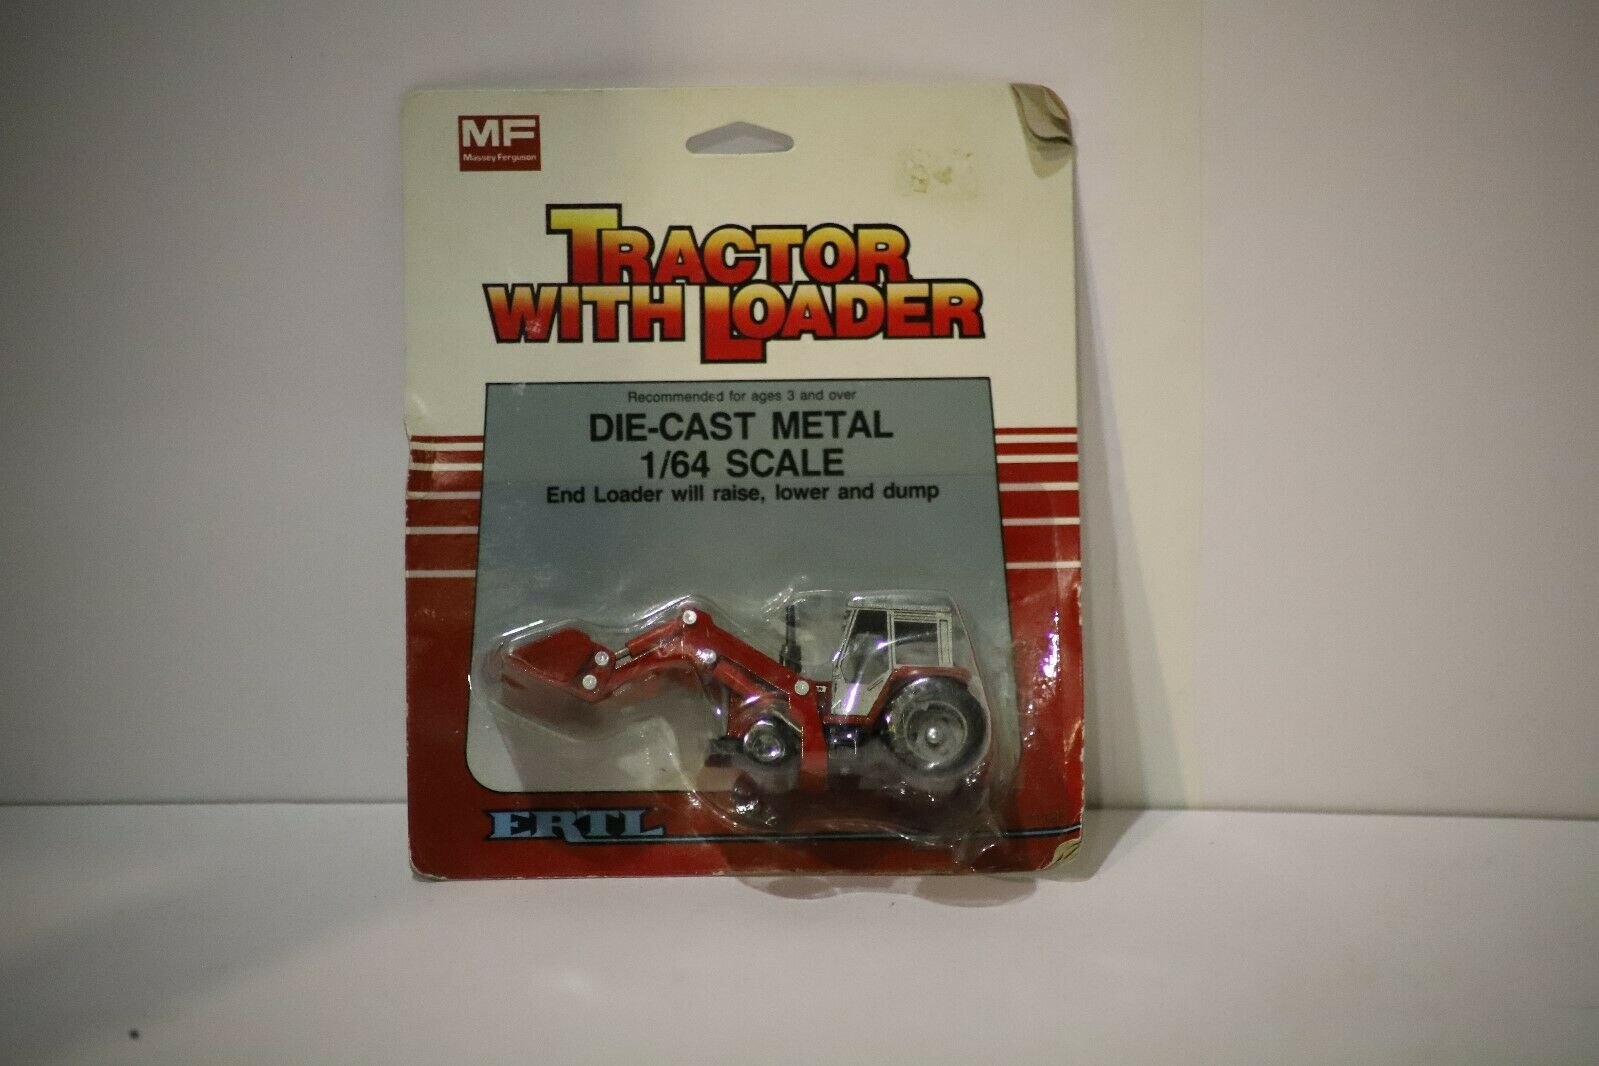 ERTL 1/64 MASSEY FERGUSON TRACTOR WITH LOADER #1125 w Free ship!